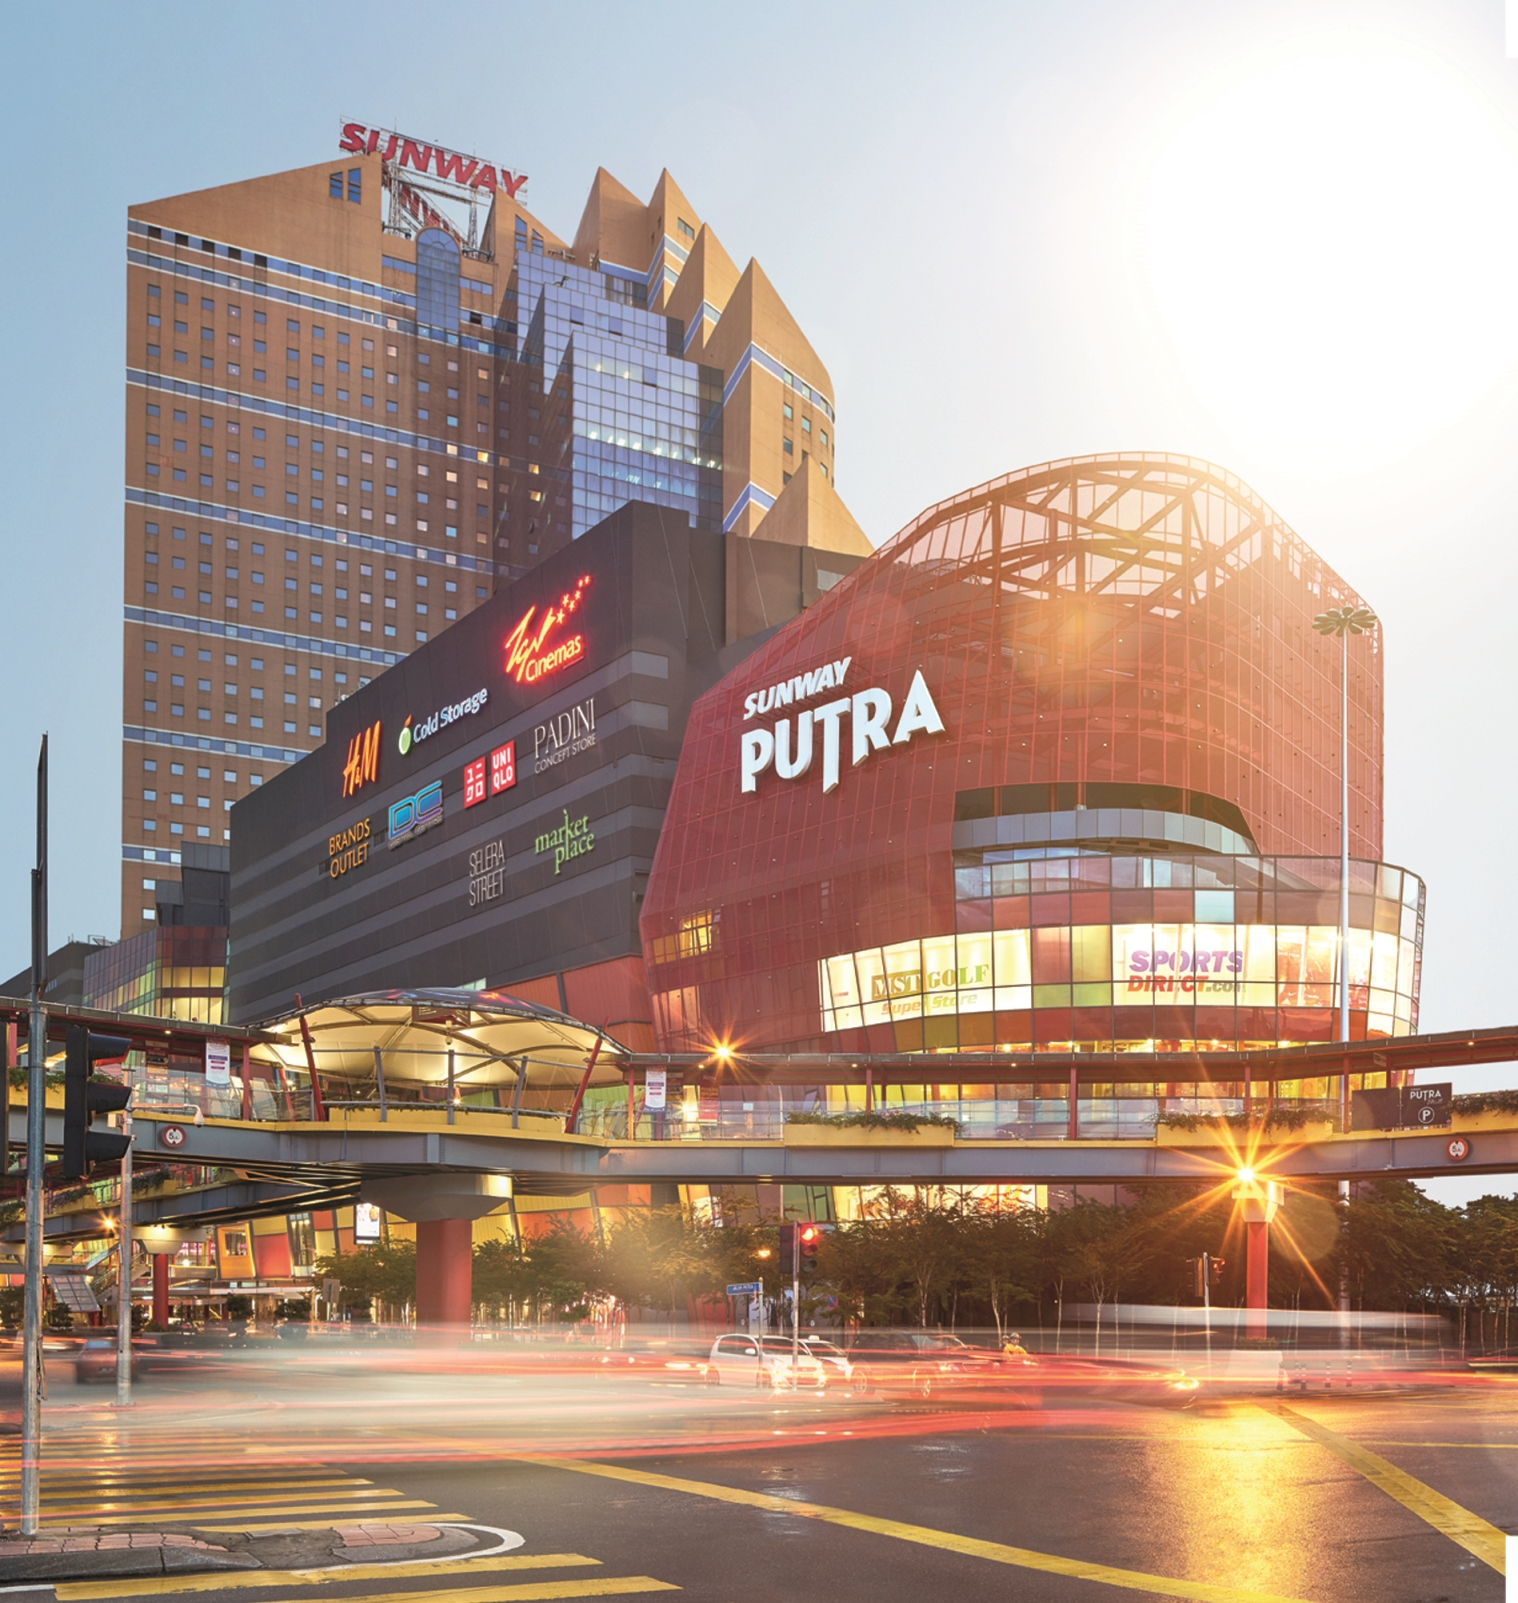 Sunway Putra Mall picks up Best Retail Development award